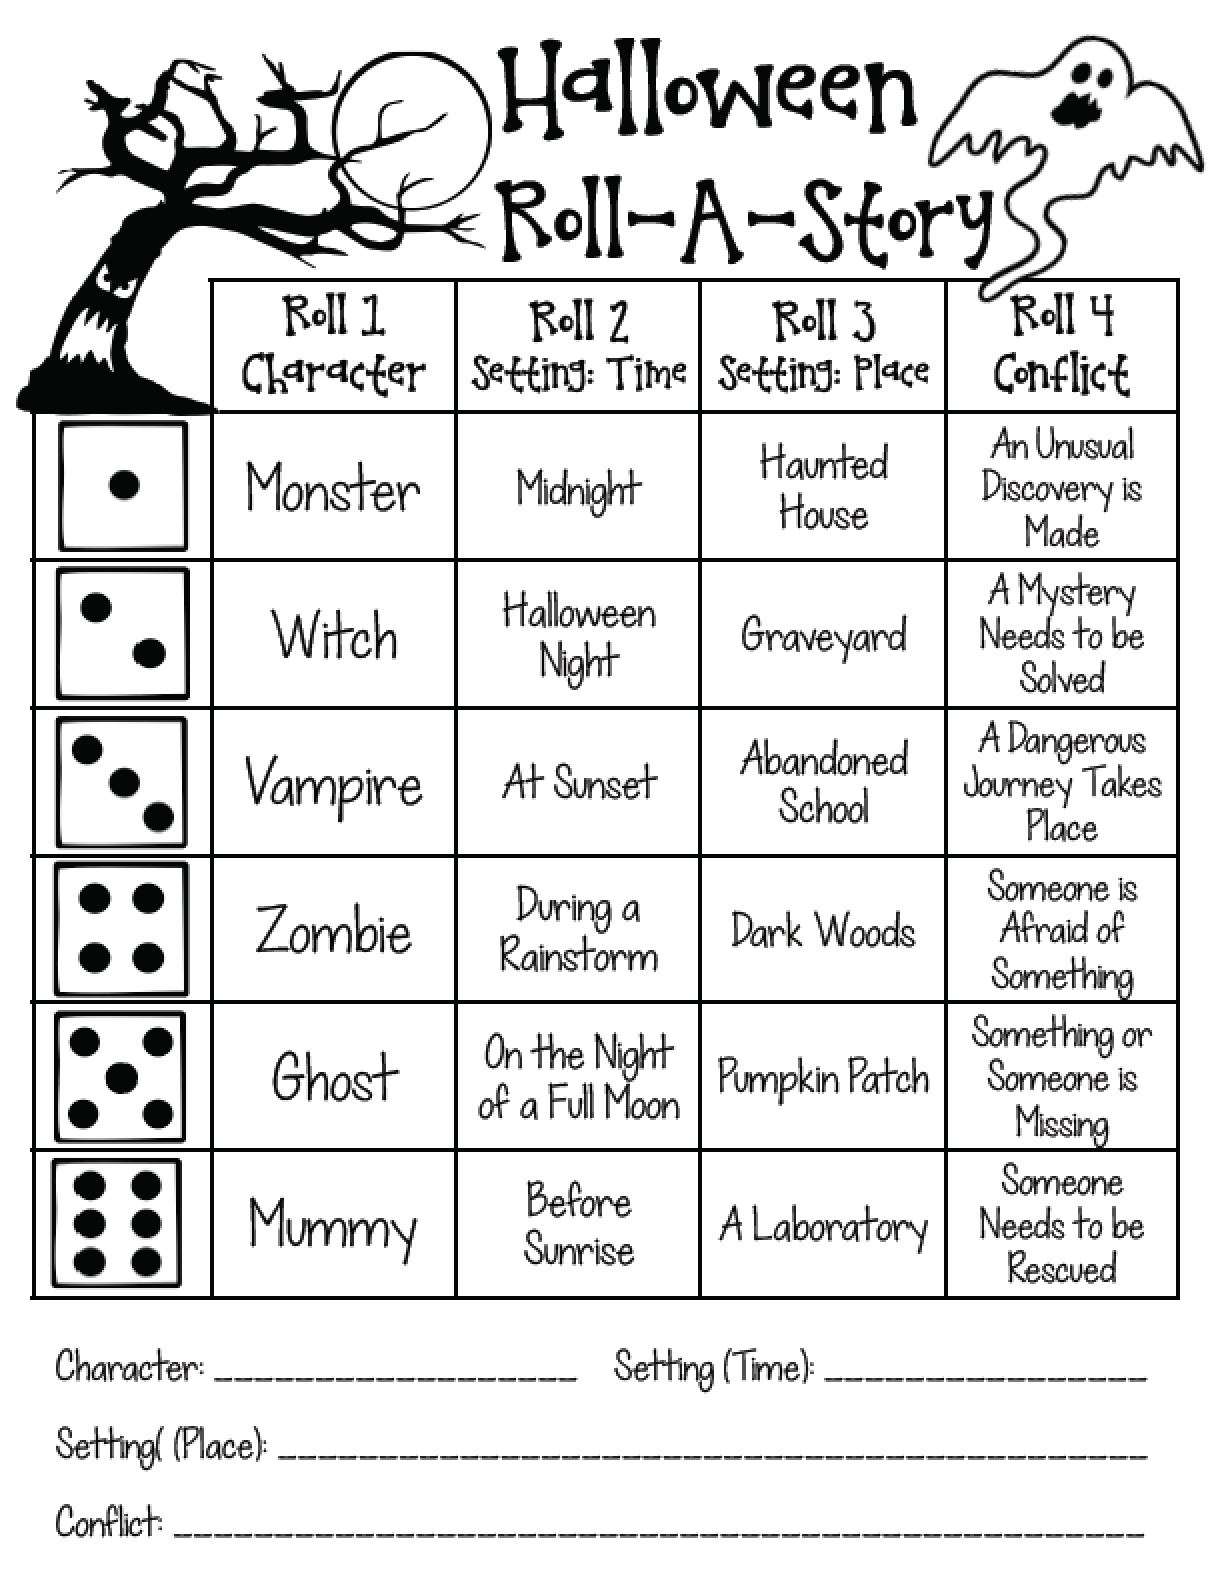 Roll A Dice Halloween Story Worksheet